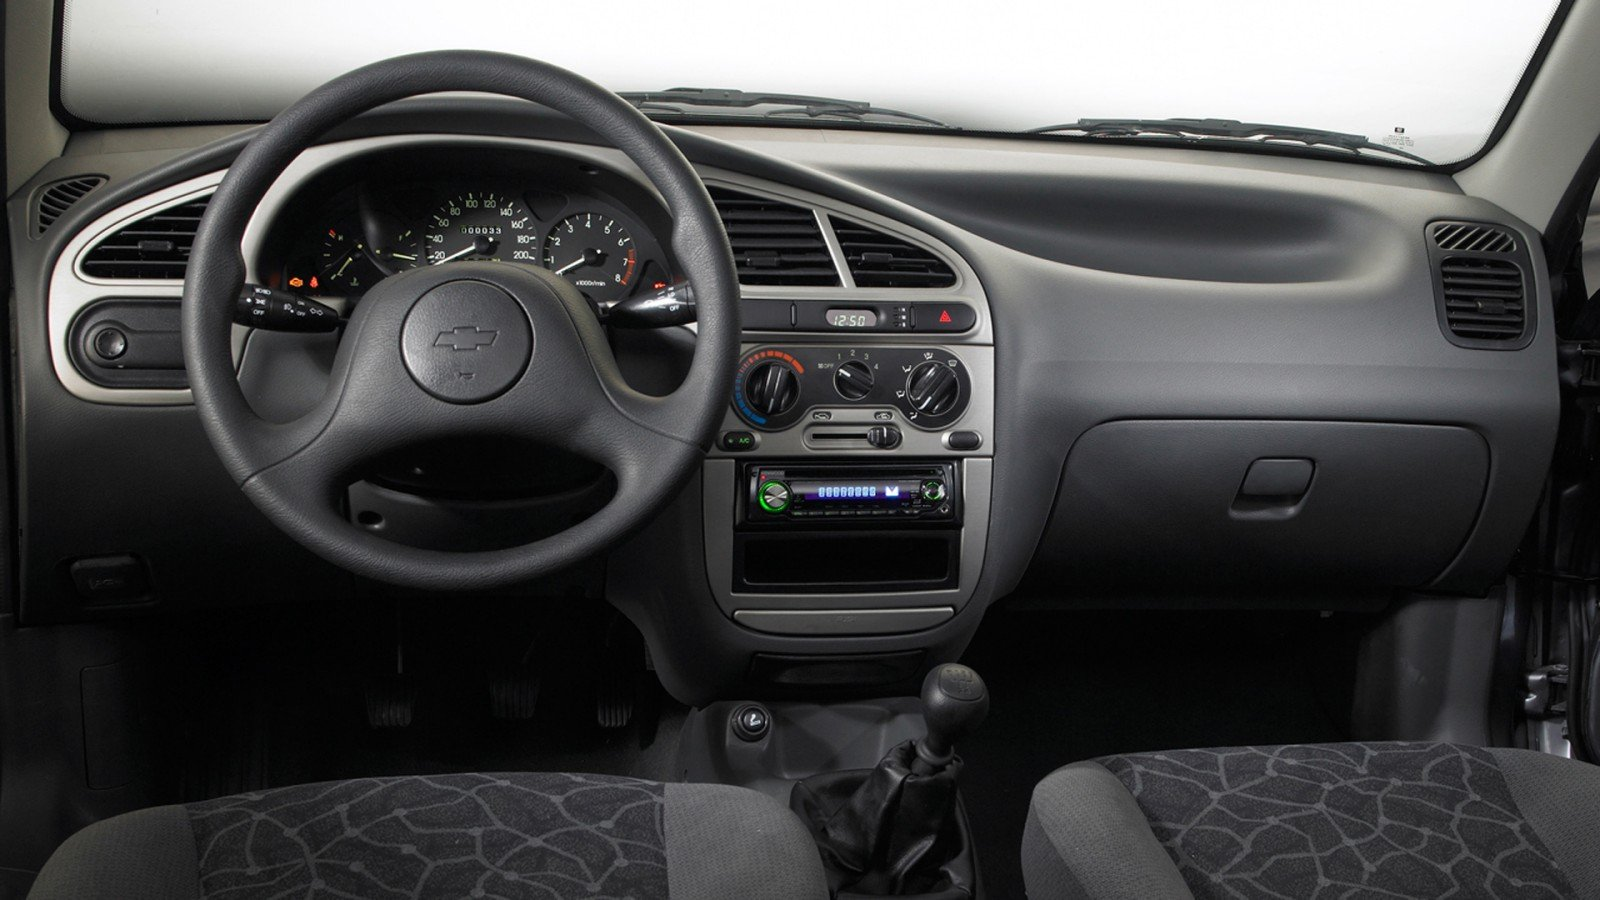 Daewoo Matiz Tuning furthermore Ford Fiesta 2 0 2002 Specs And Images additionally Watch furthermore Daewoo Matiz Electrical Wiring Diagram also Mercedes C200 Kompressor Elegance. on daewoo lanos interior